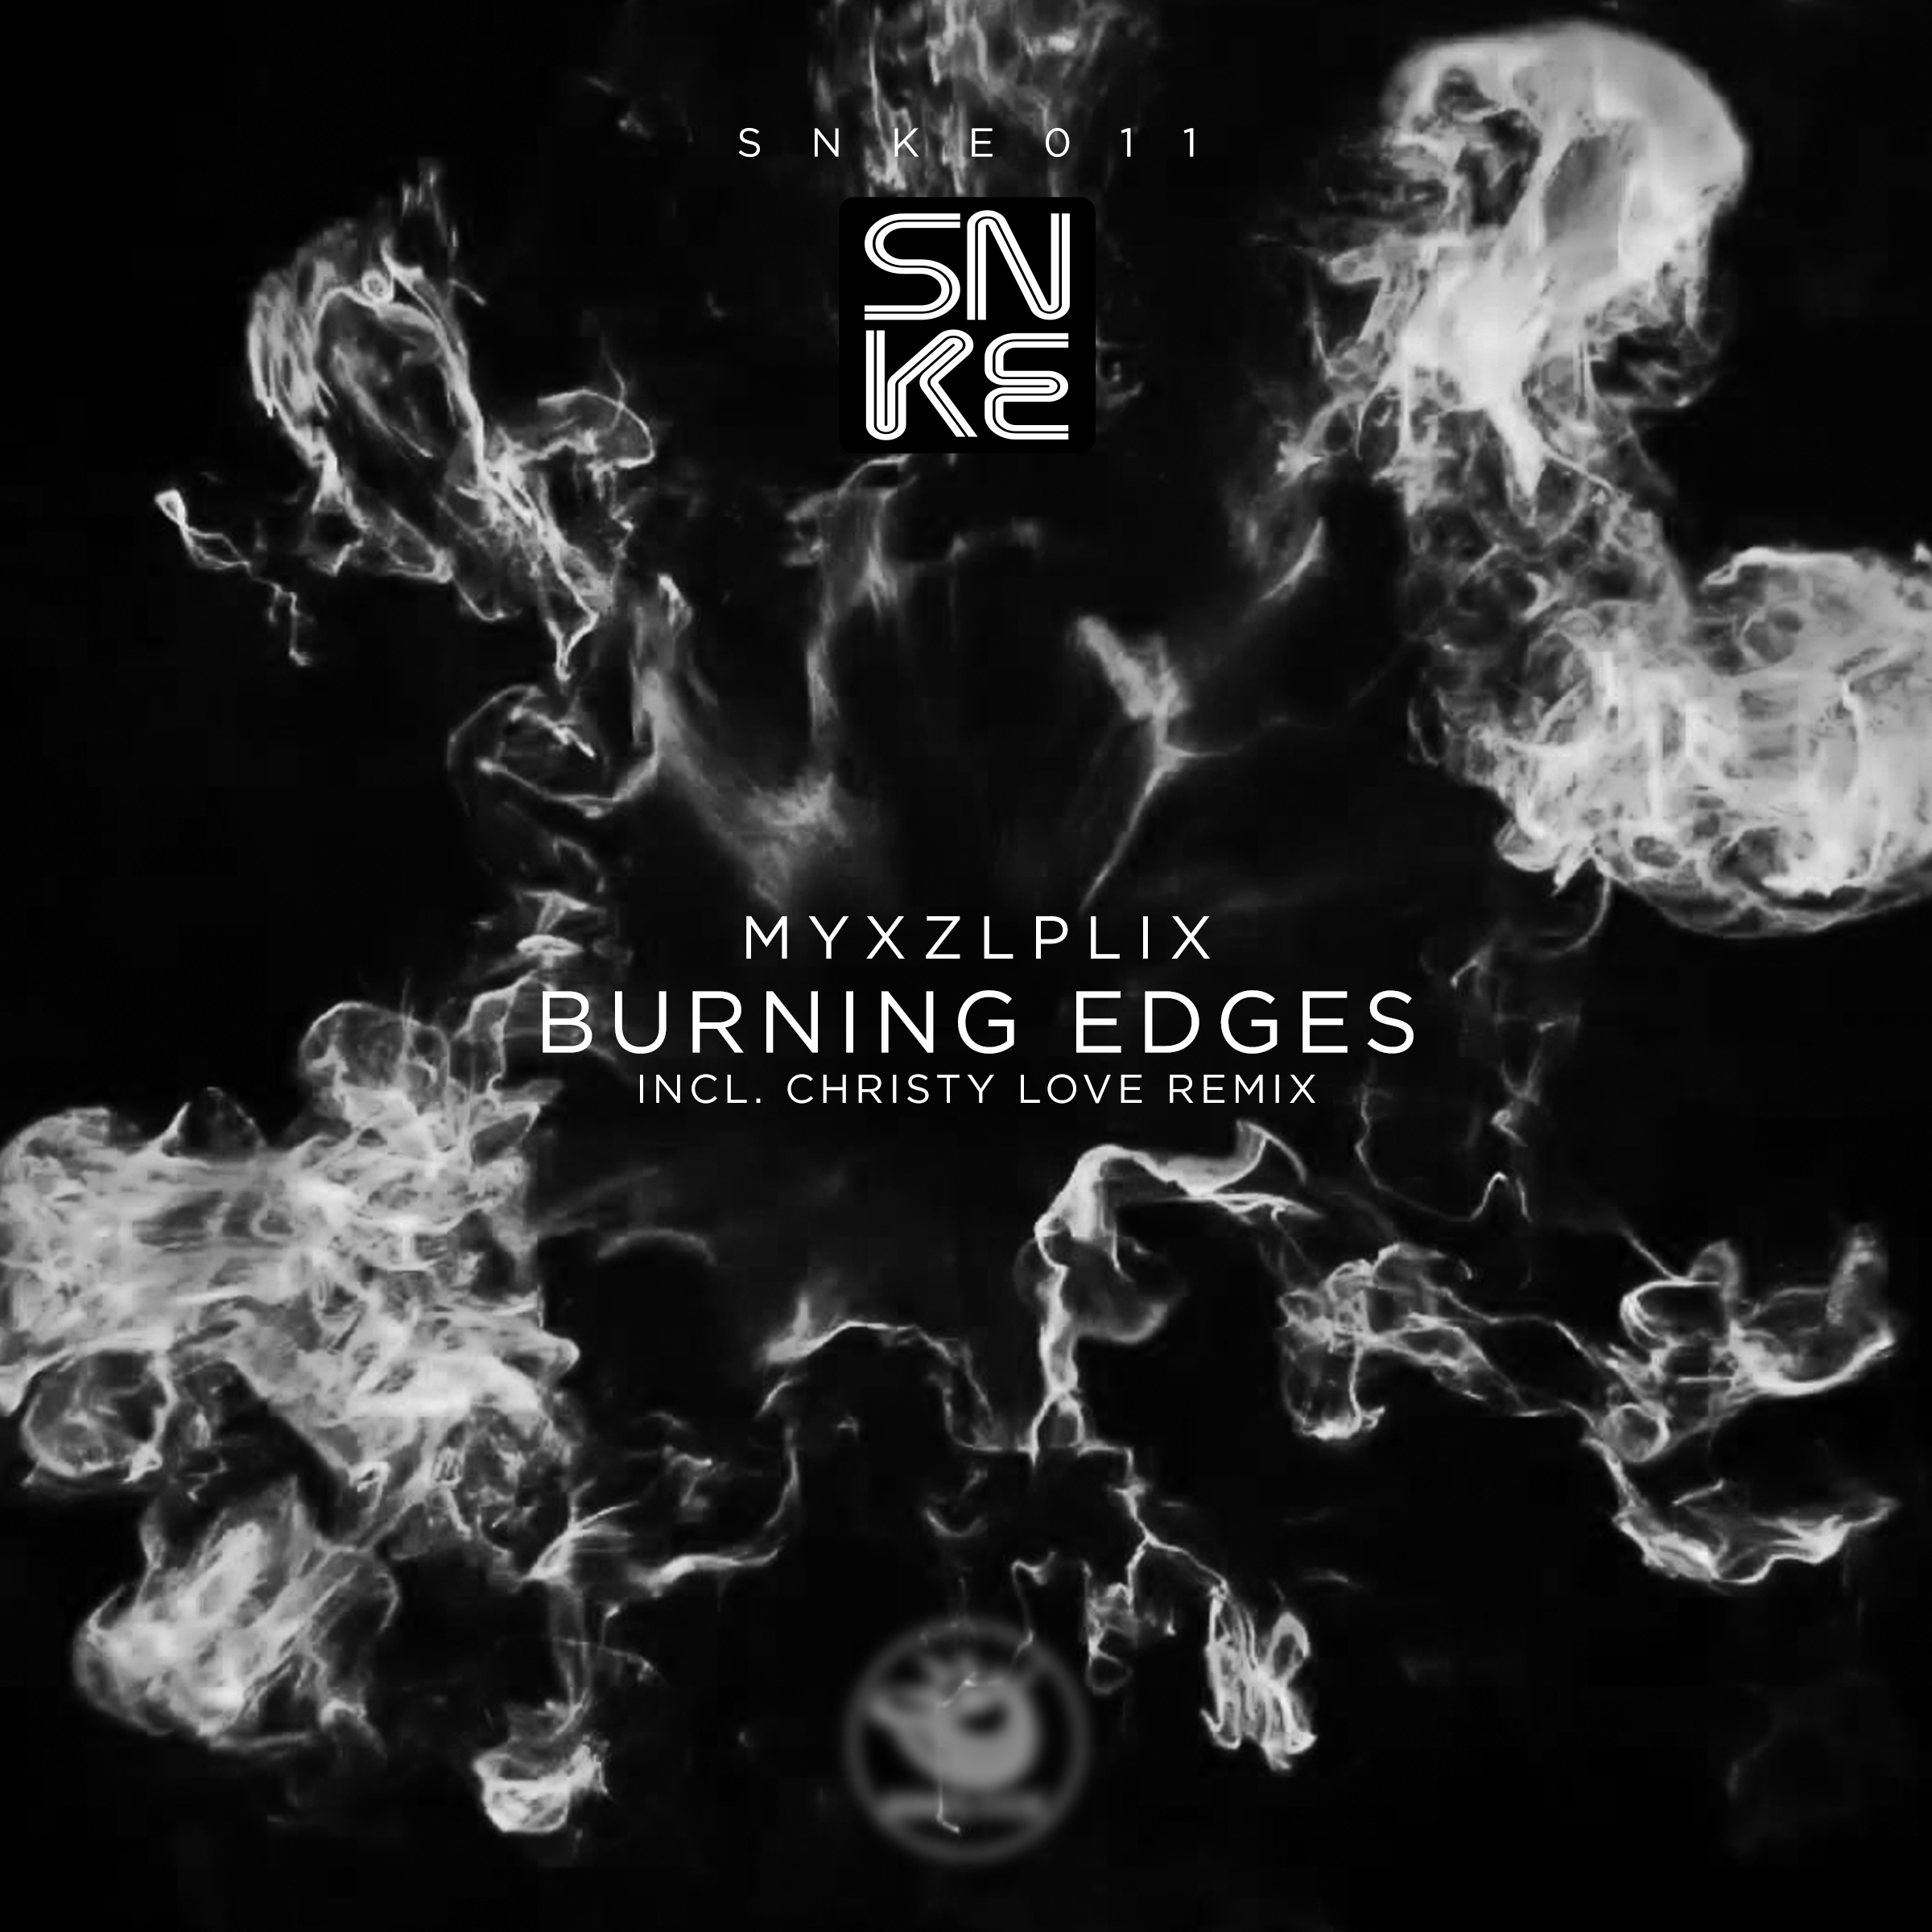 Myxzlplix - Burning Edges (incl. Christy Love Remix) - SNKE011 Cover